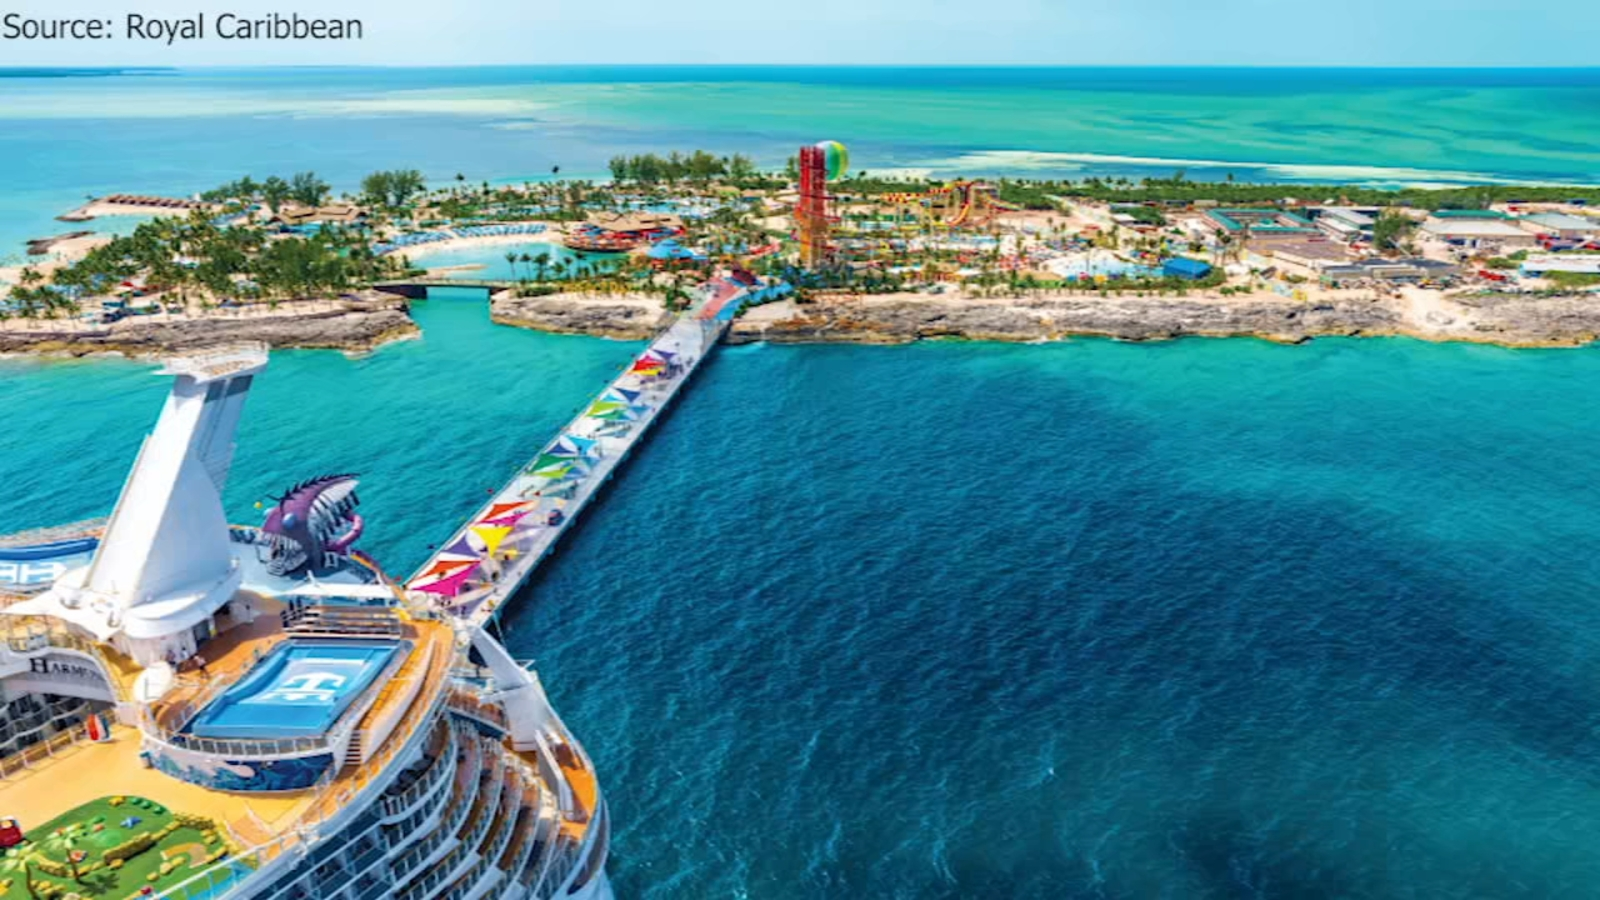 You can take this cruise from Galveston to private island in the Bahamas